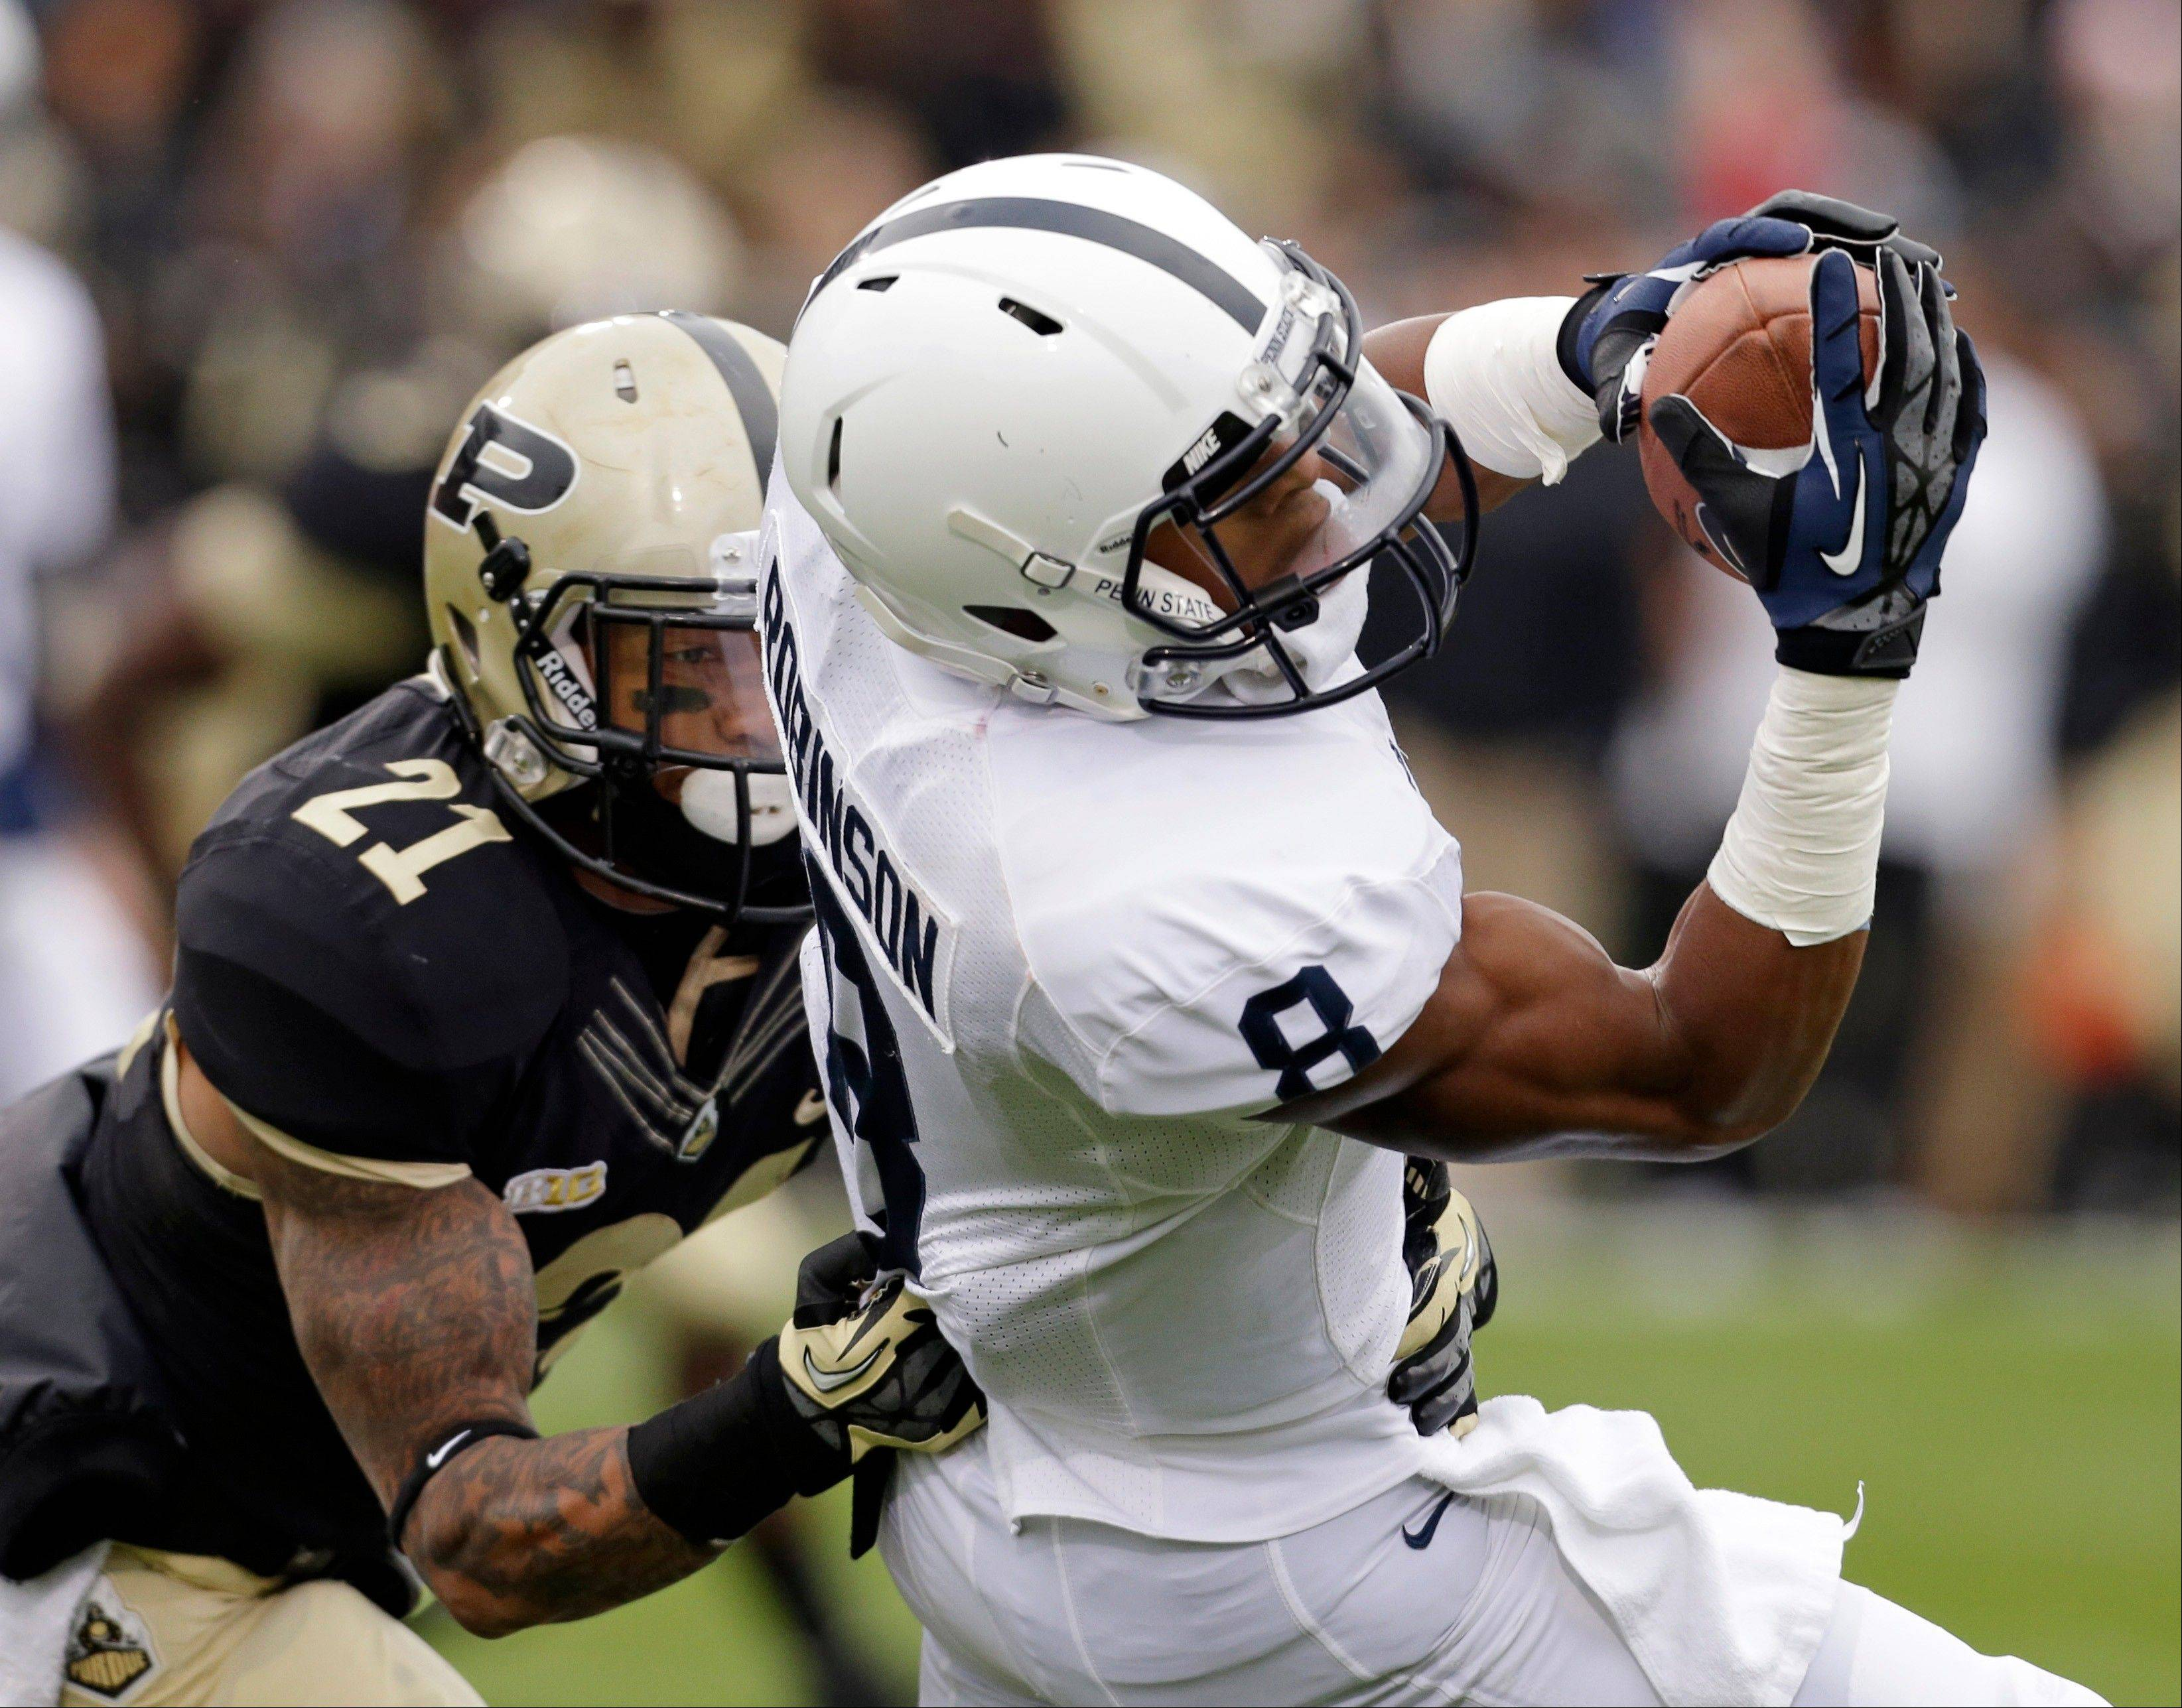 Penn State wide receiver Allen Robinson makes a catch against Purdue cornerback Ricardo Allen Saturday during the first half in West Lafayette, Ind.